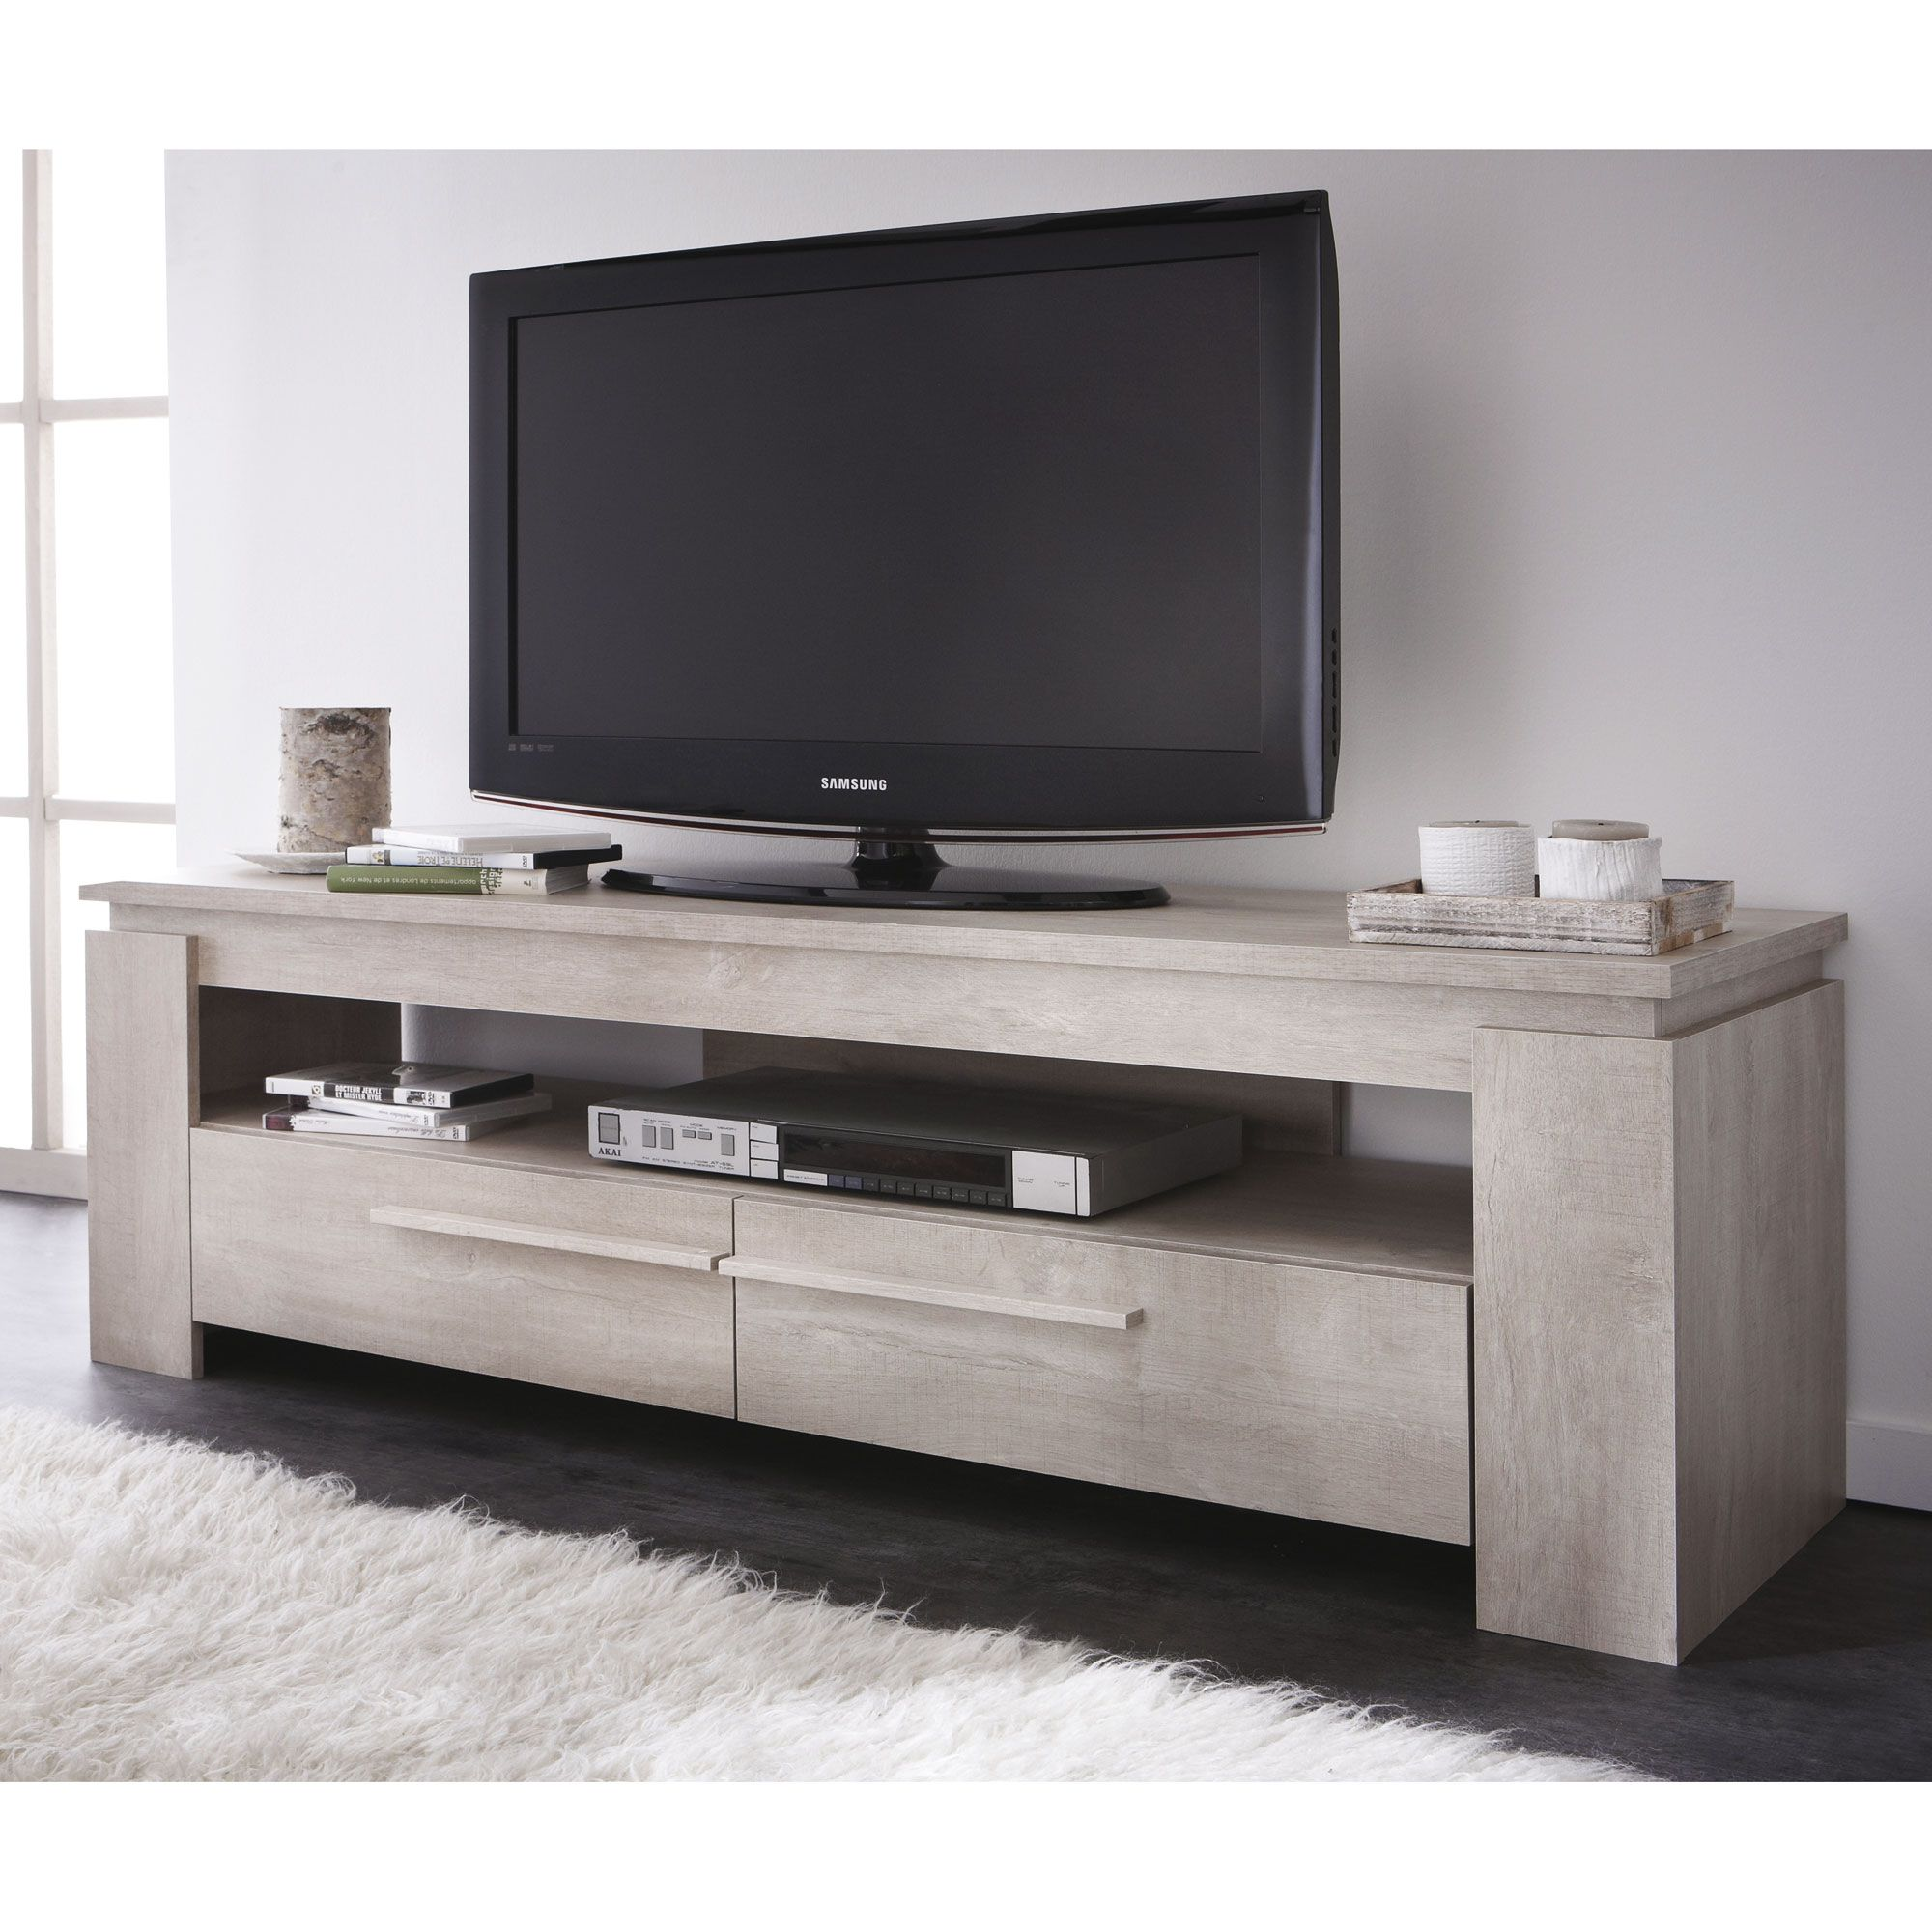 meuble tv bas en bois 2 tiroirs l140 cm segur salons tv. Black Bedroom Furniture Sets. Home Design Ideas